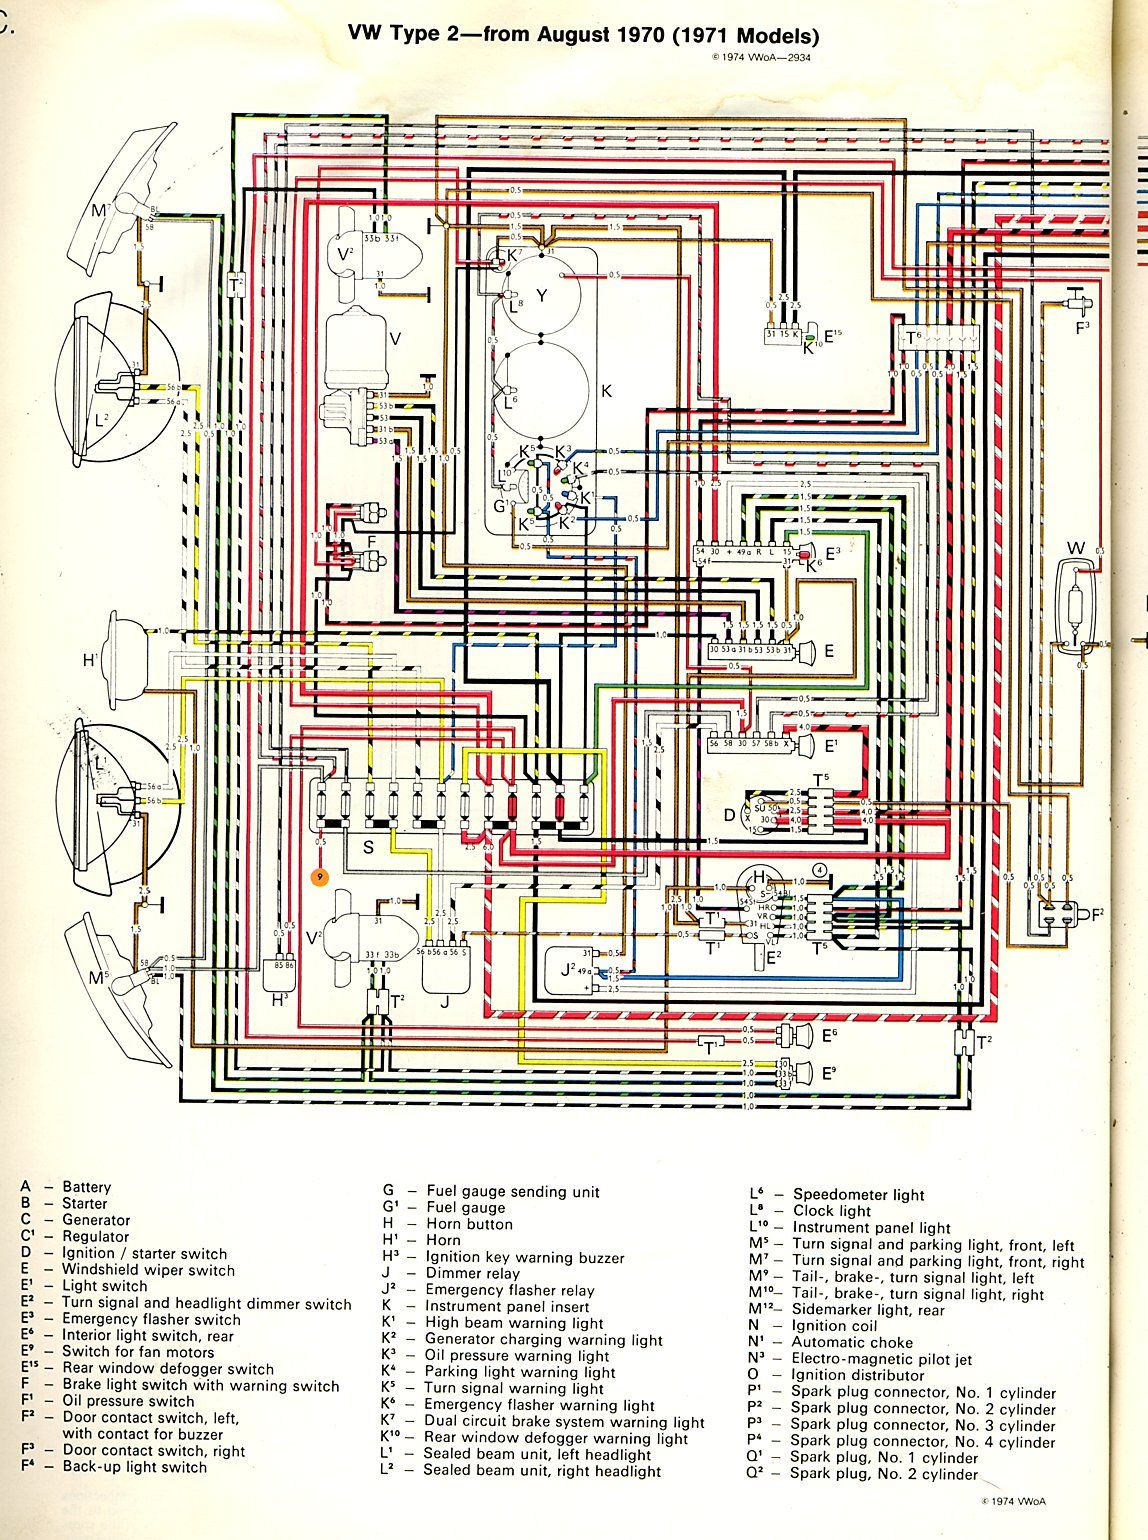 1971 bus wiring diagram | electrical wiring diagram, vw bus, vw beetles  pinterest